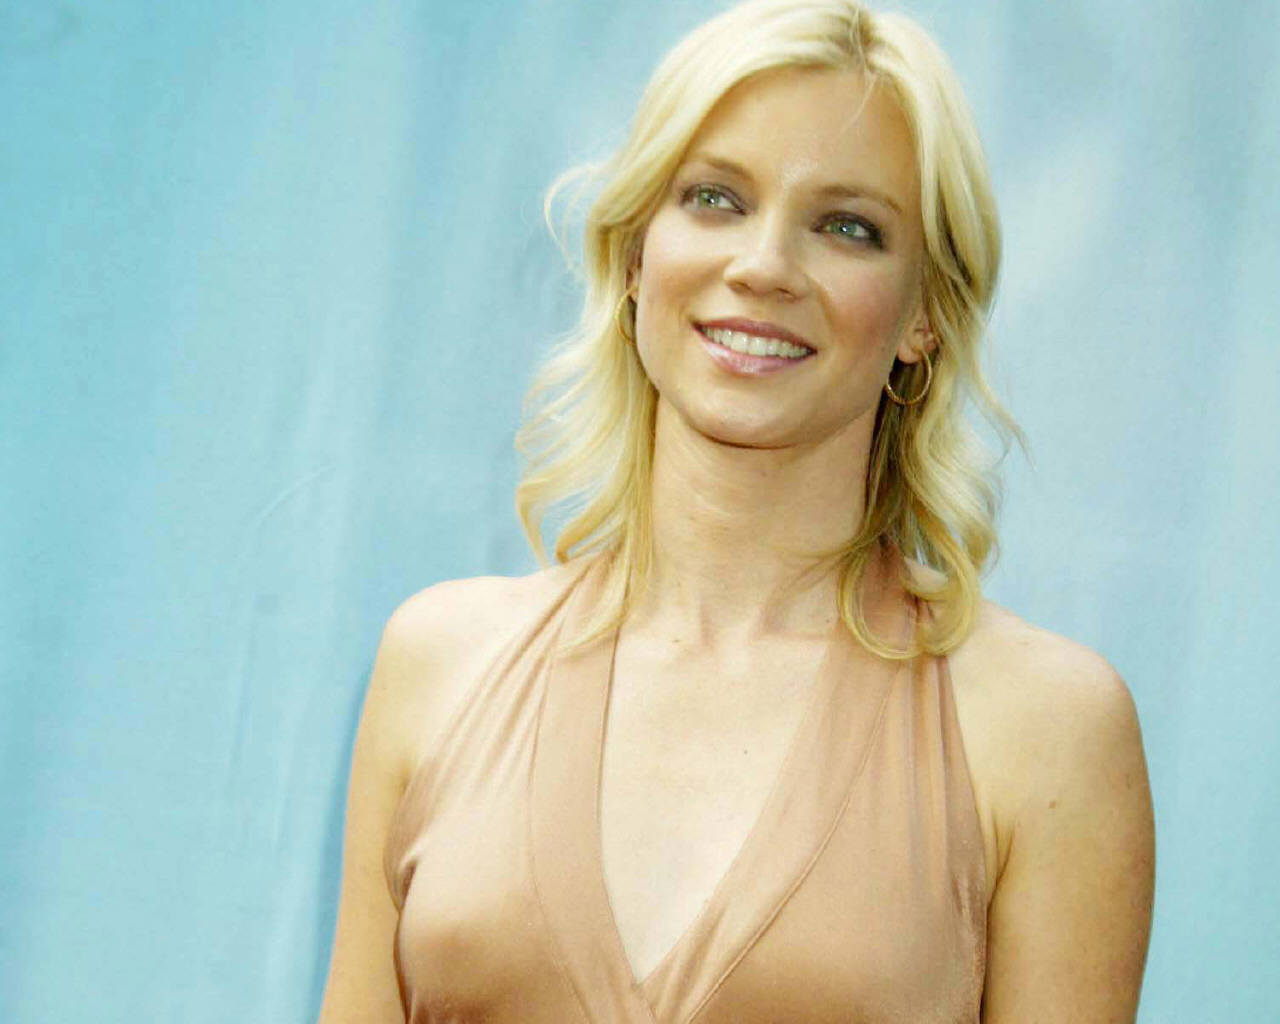 hot naked pics of amy smart the actress